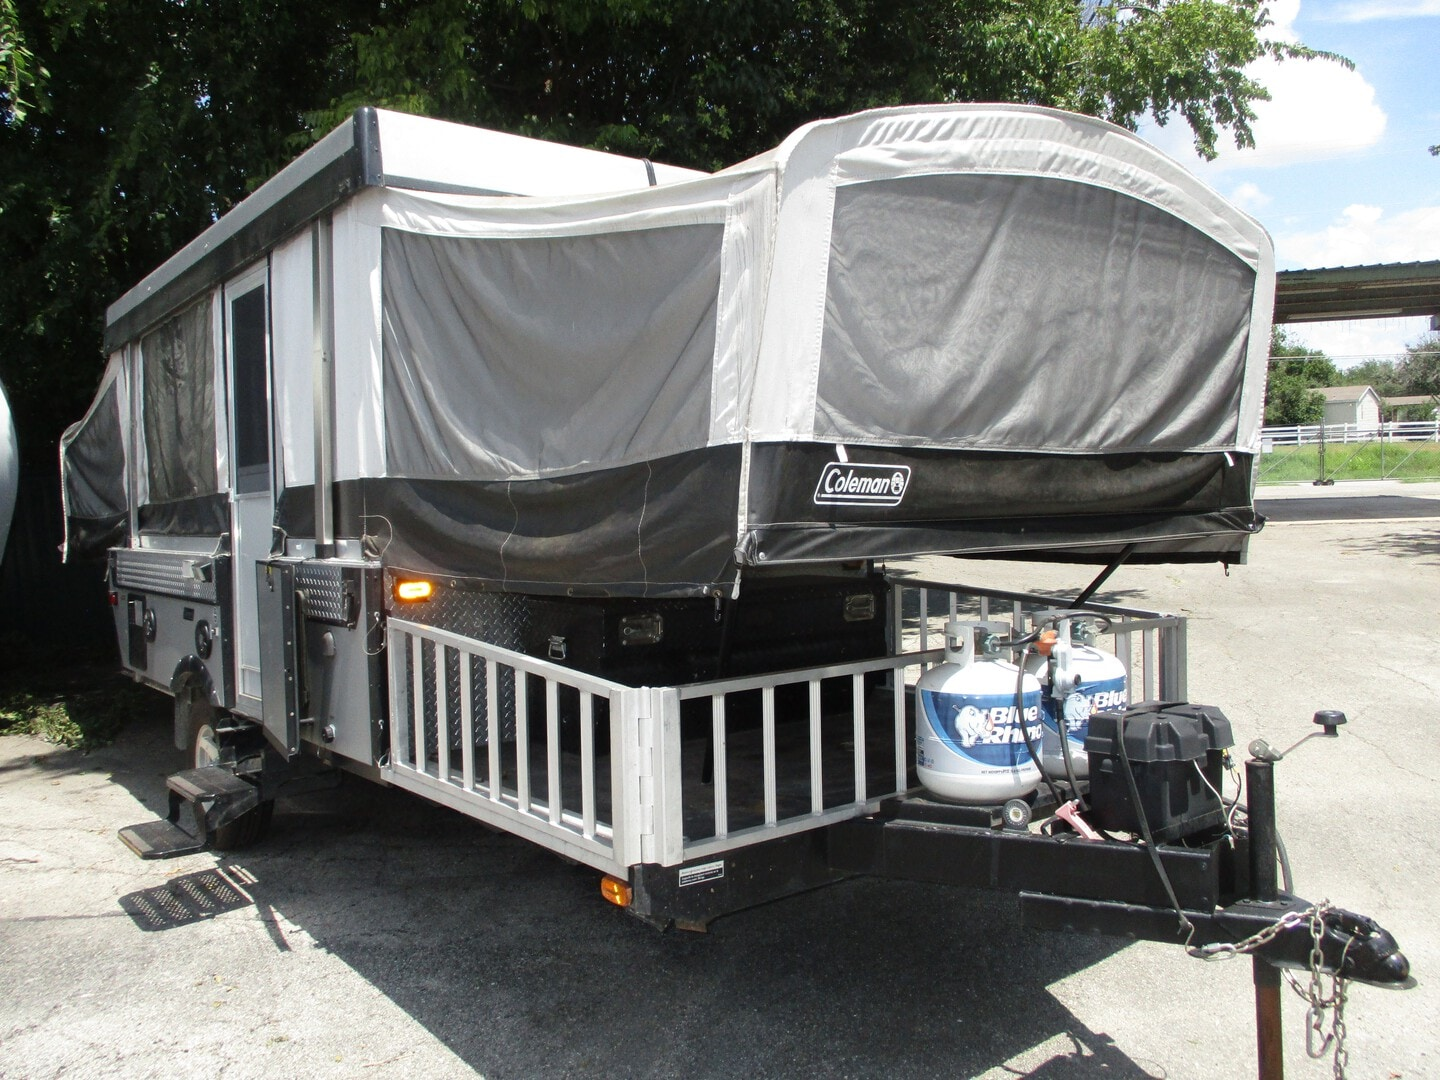 Used, 2010, Coleman Camping Trailers, Evolution E34437, Pop-Up Campers